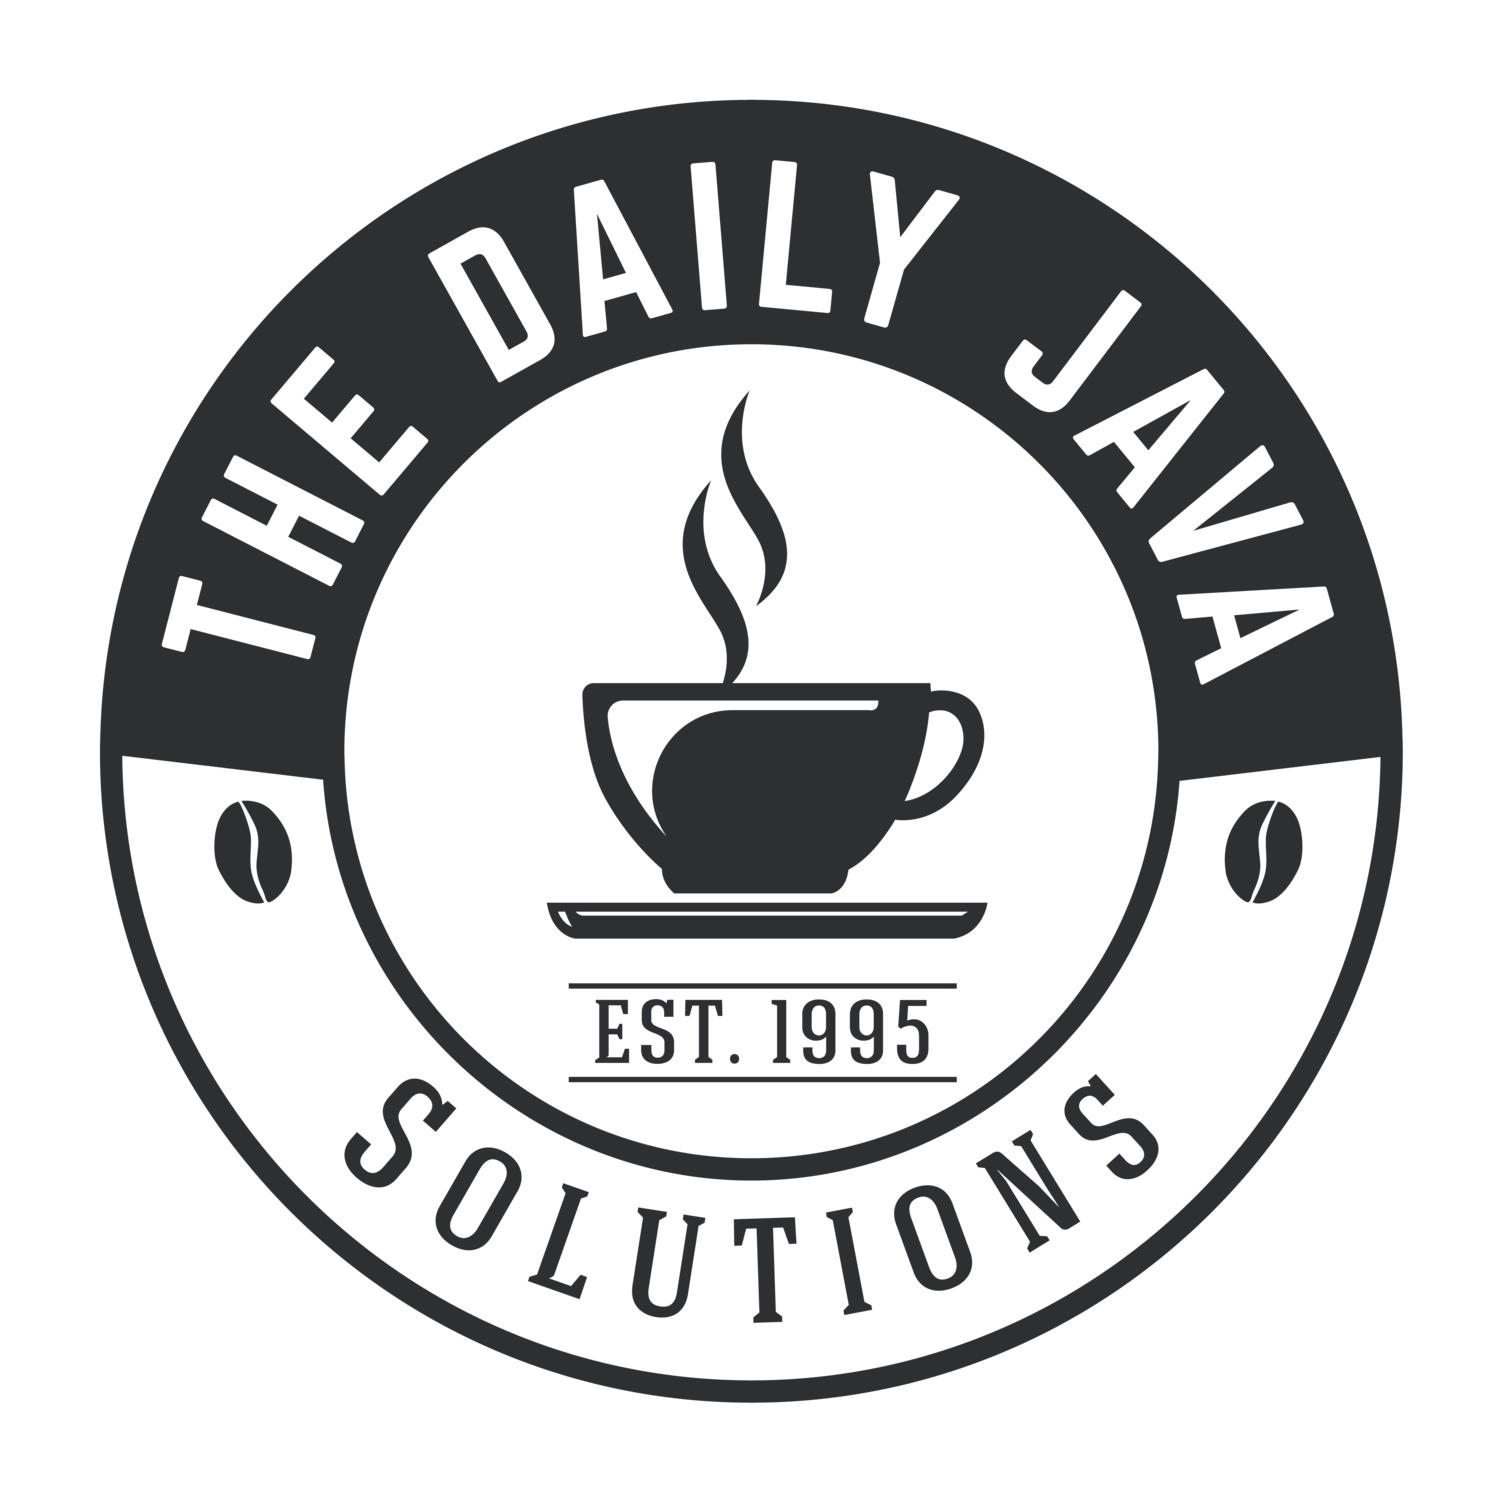 The Daily Java Solutions